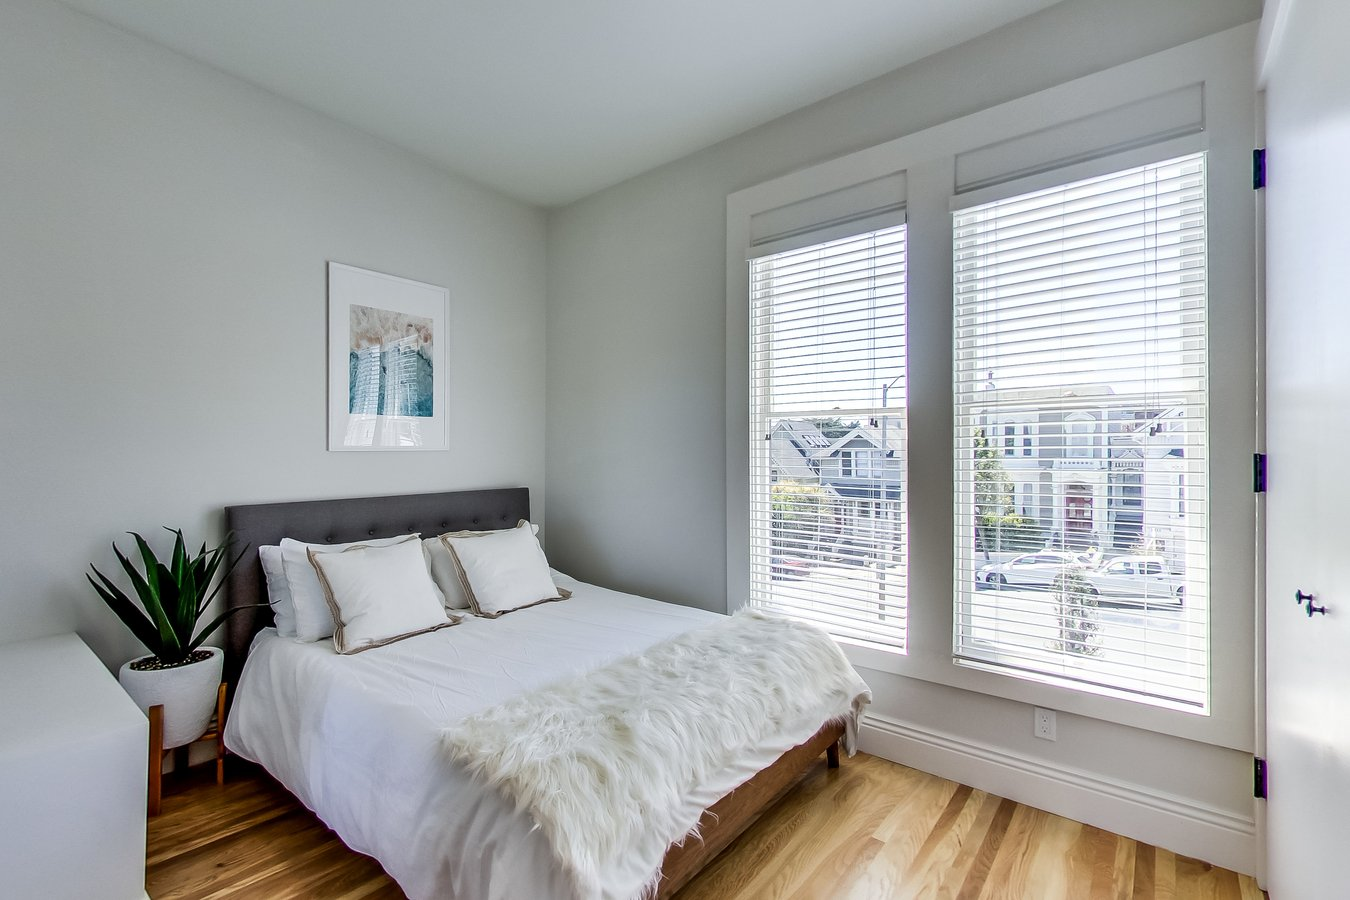 1 Bedroom 1 Bathroom Apartment for rent at Bush St & Presidio Ave Coliving in San Francisco, CA